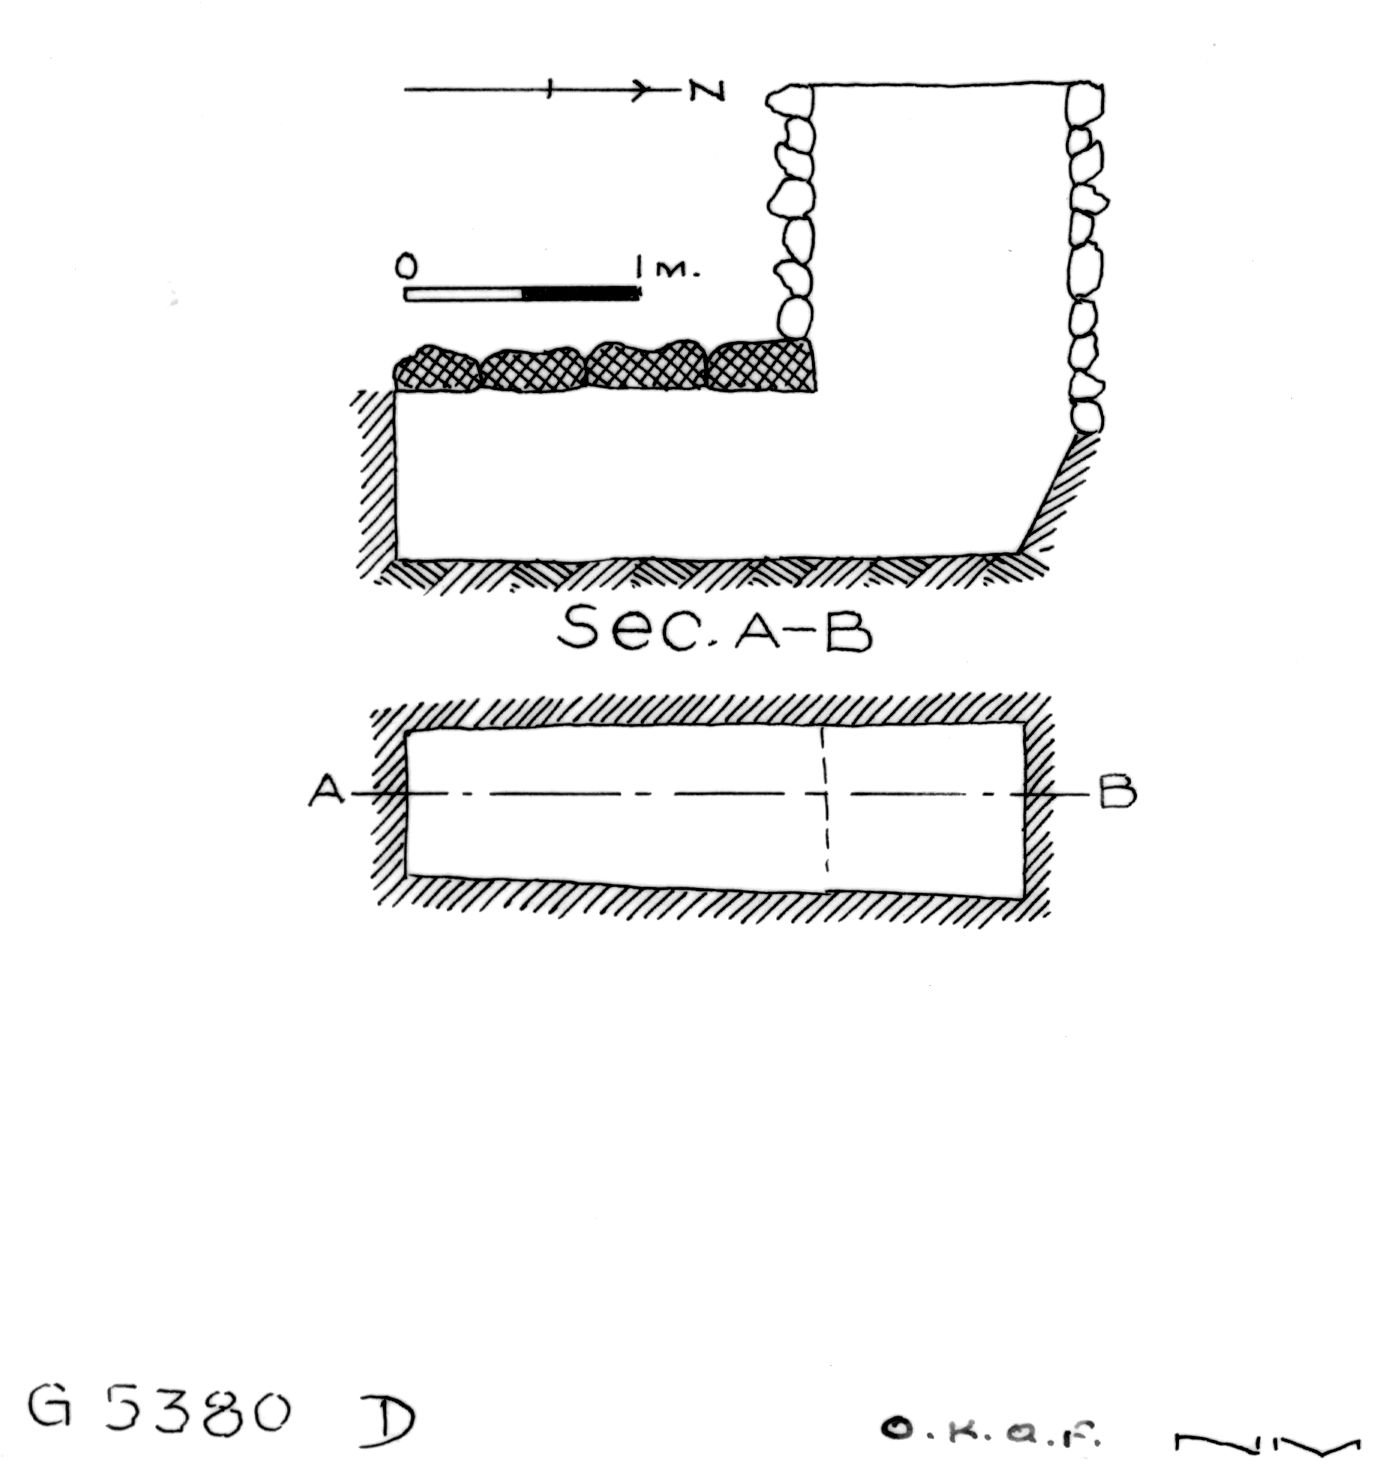 Maps and plans: G 2330 = G 5380, Shaft D